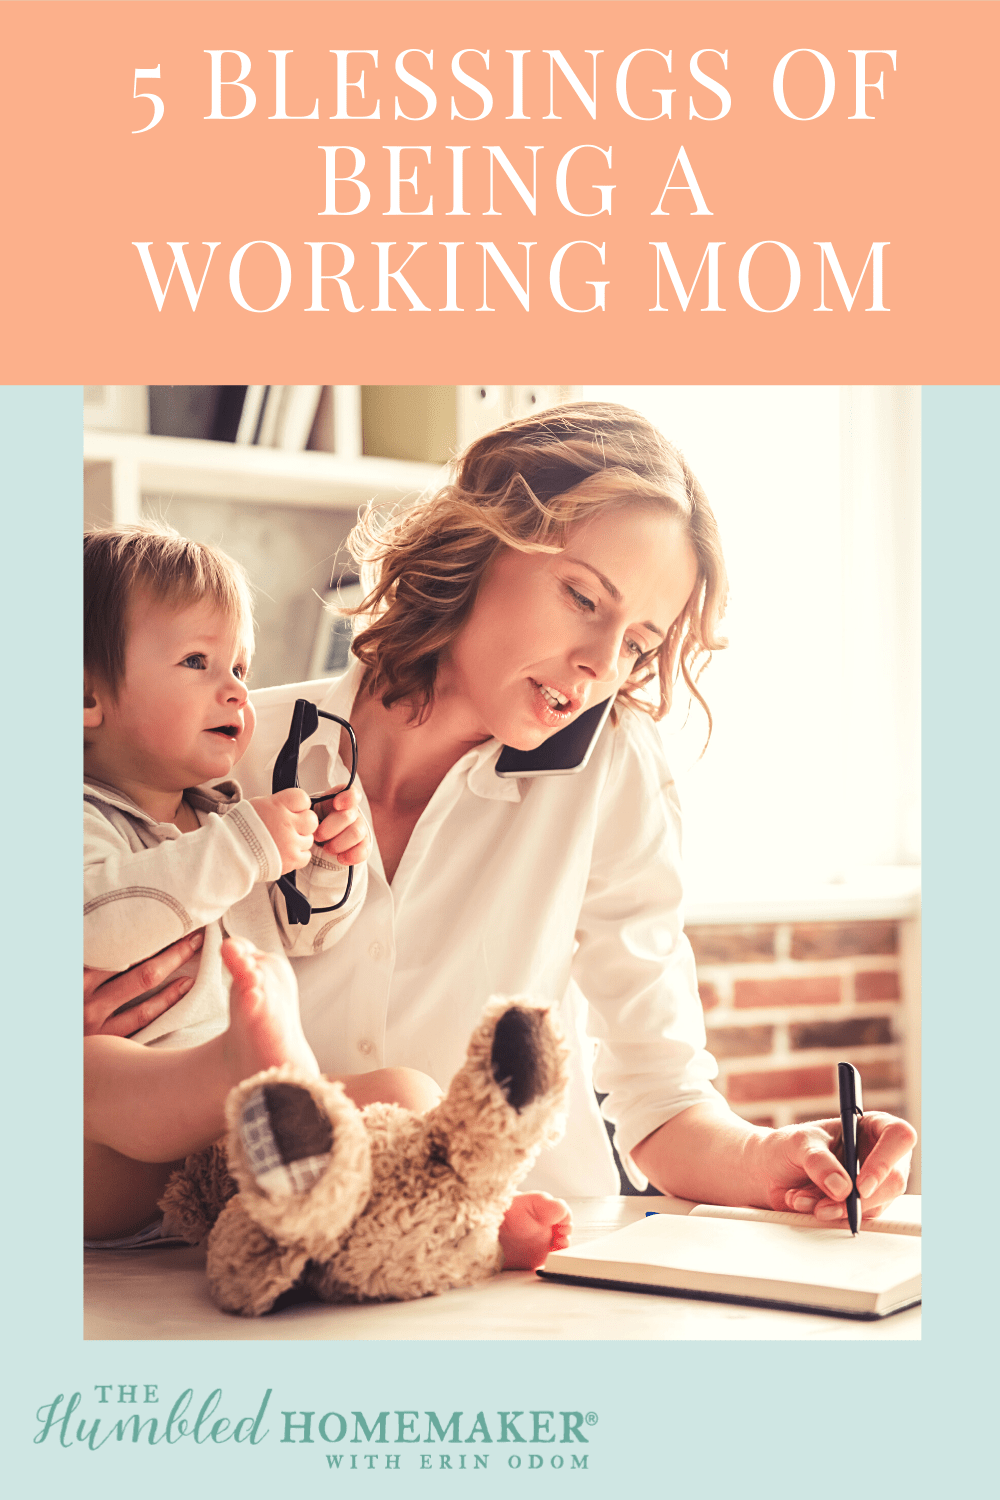 Here's some encouragement for all you working moms out there! If you want to stay home with your kids, here's encouragement and advice–plus a look at some of the blessings that come with your time in the workplace!